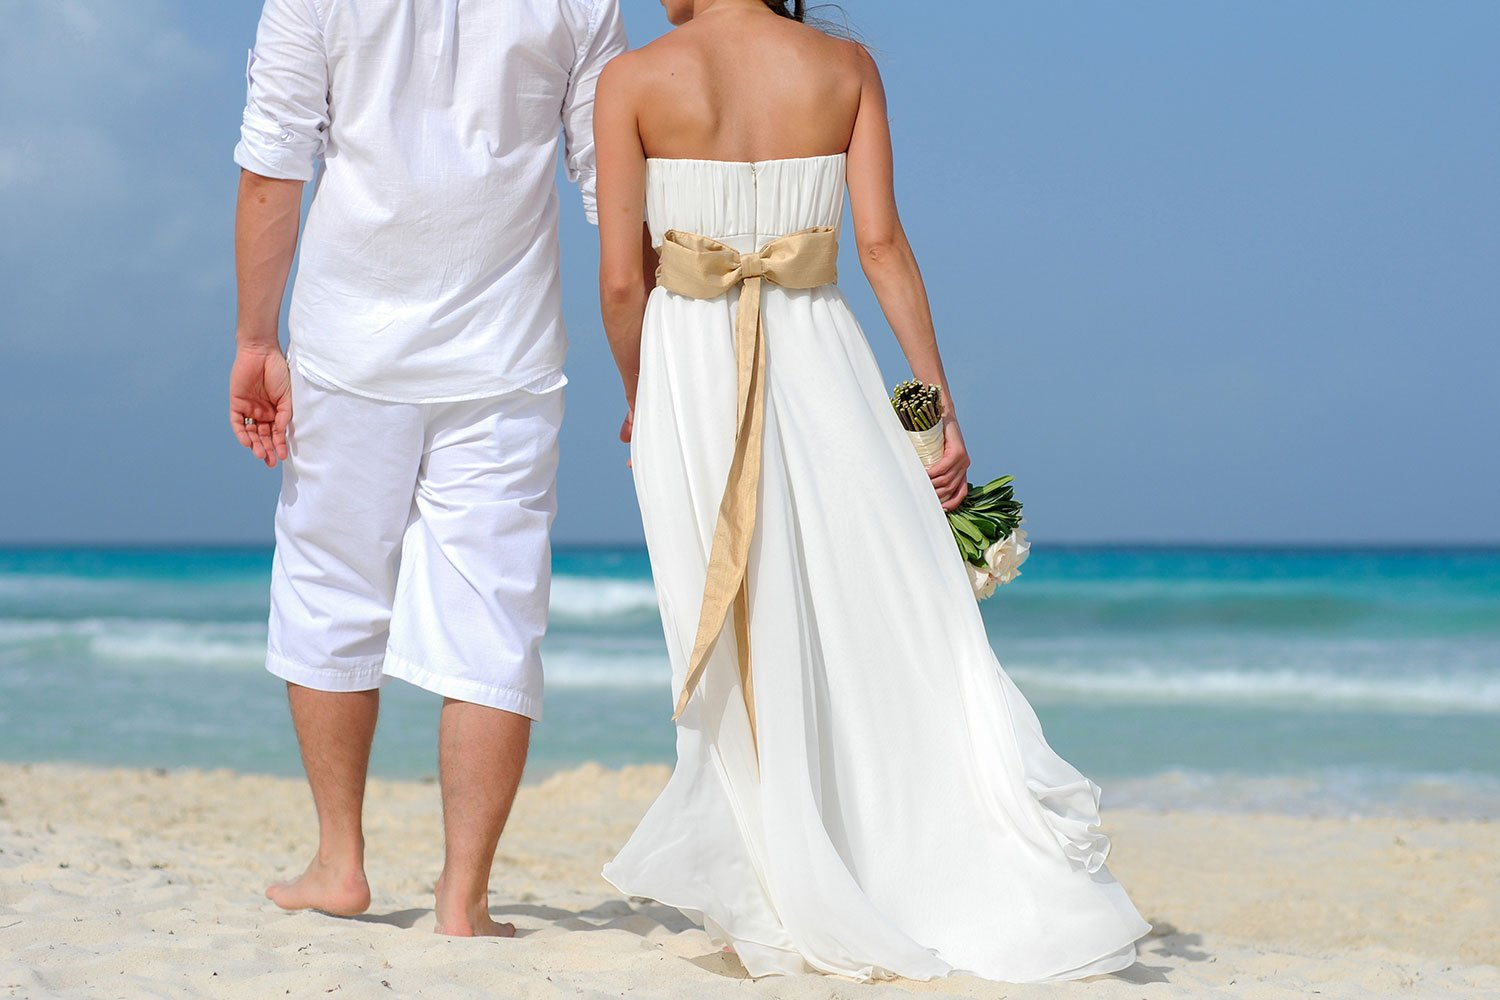 destination Weddings planning columbia sc | destination-wedding-experts.com